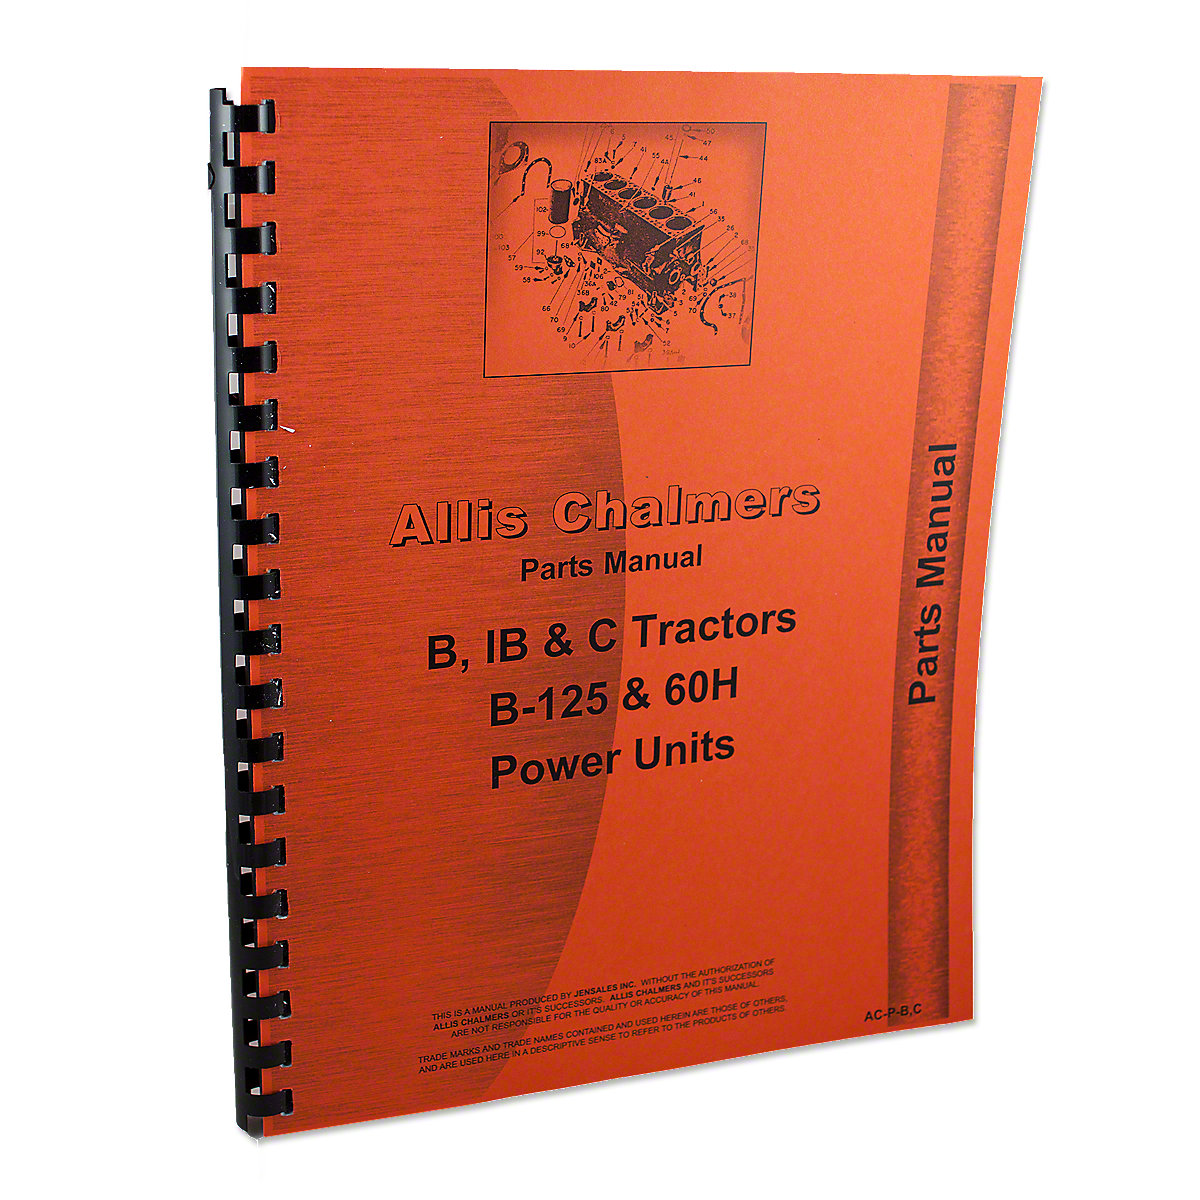 REP1734 Allis Chalmers B, C, IB Tractors, B-125 Power Unit, Parts Manual